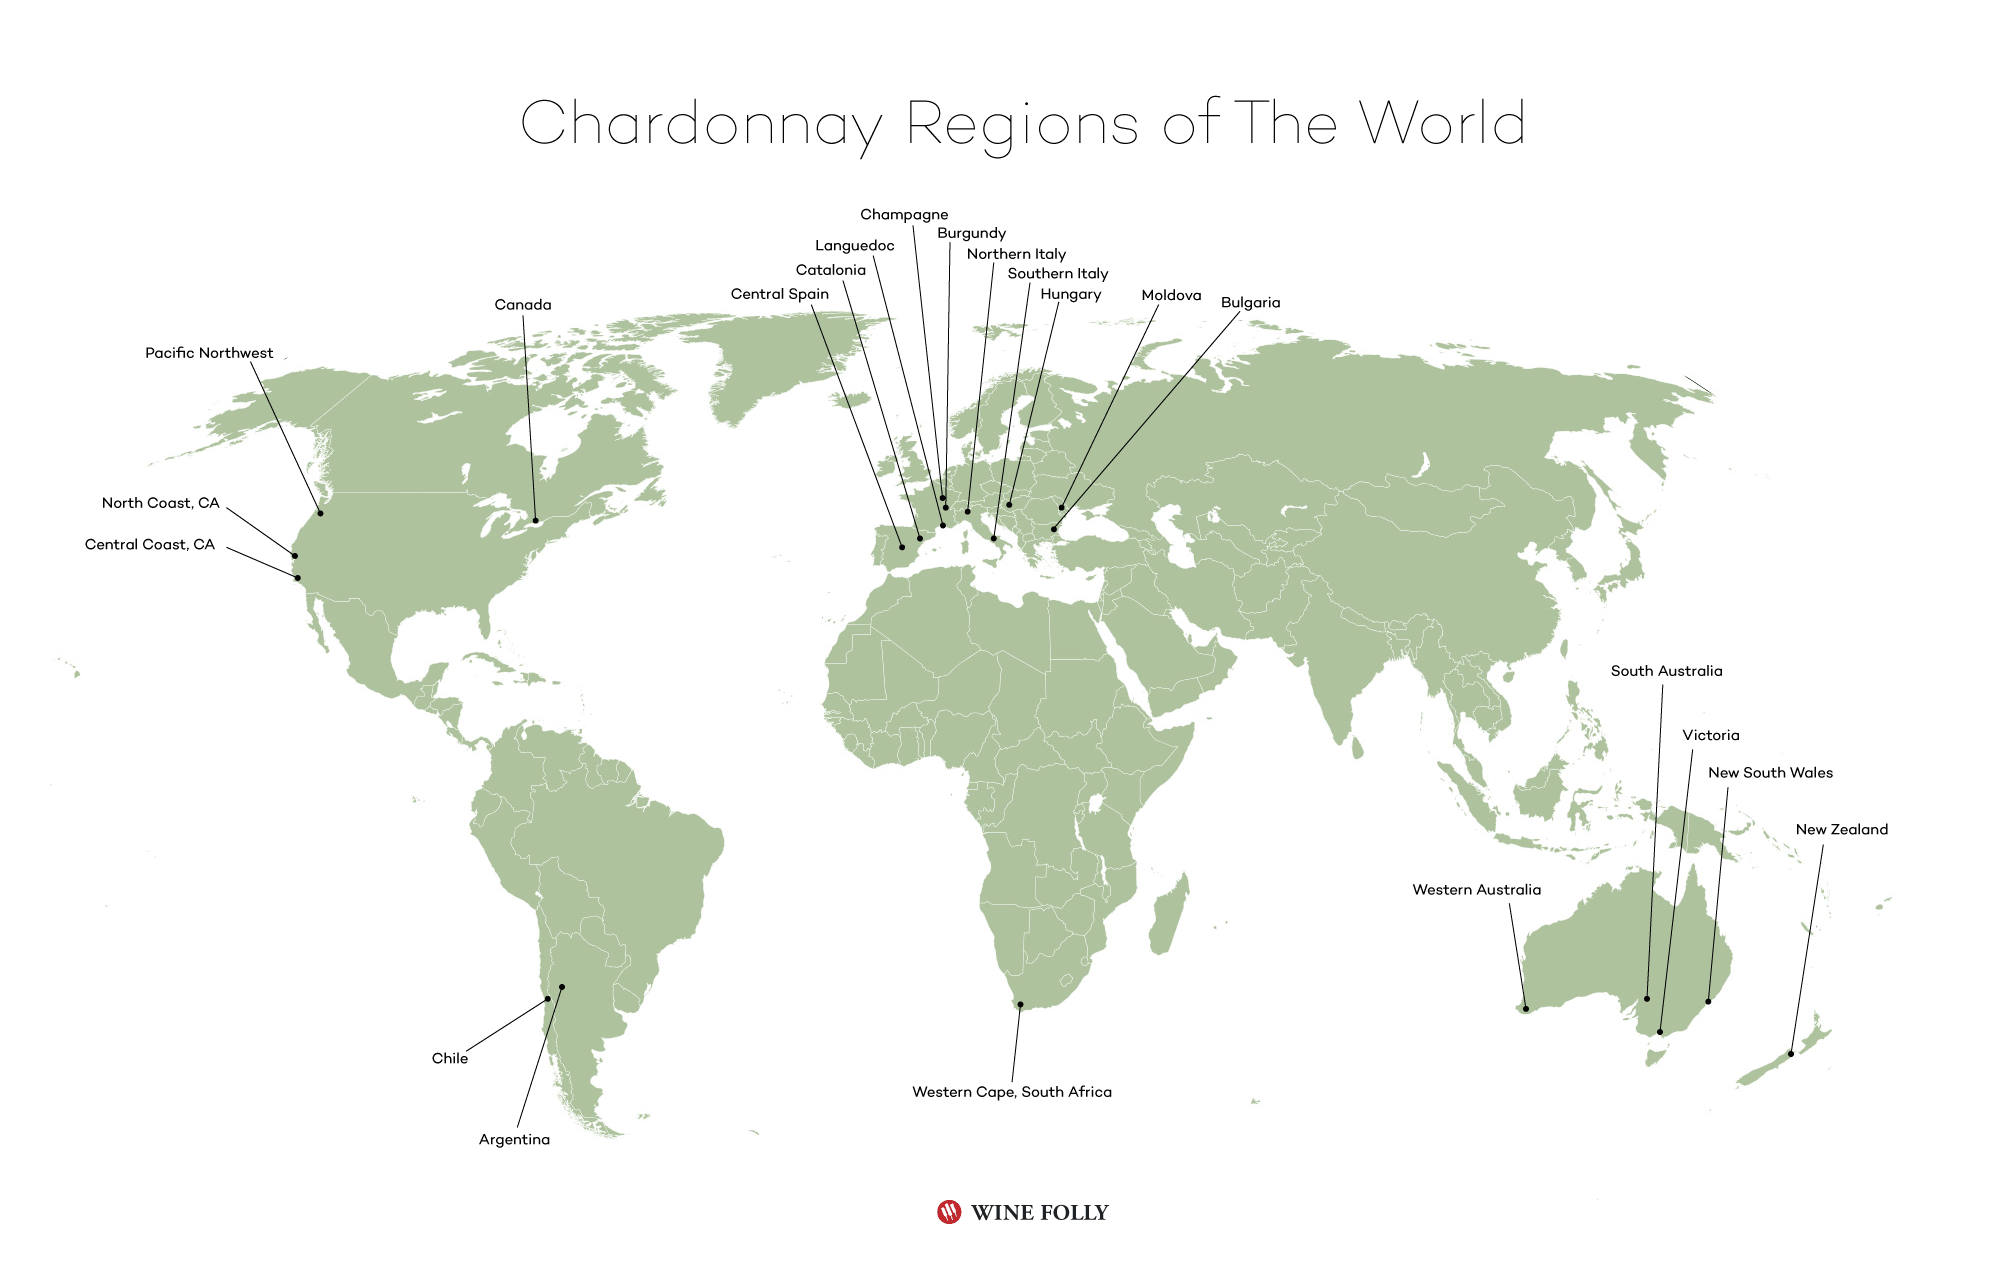 Chardonnay wine regions of the world